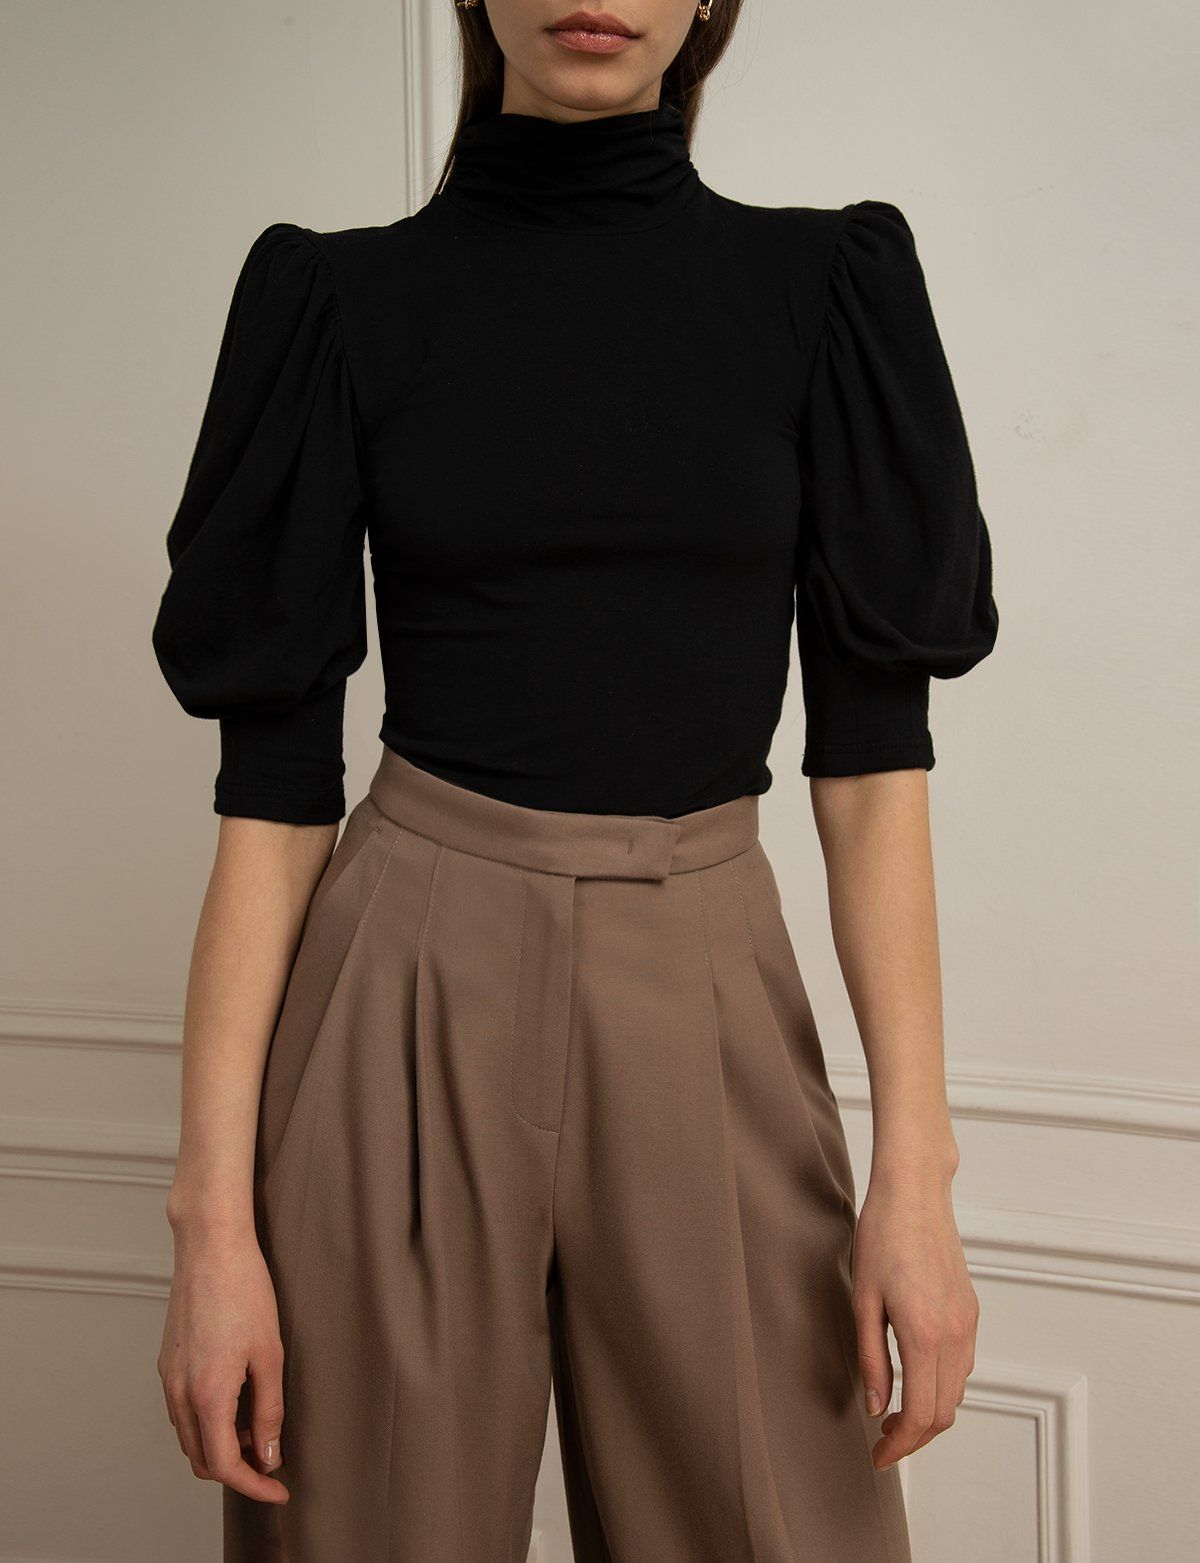 Black Puff Sleeve Top - S